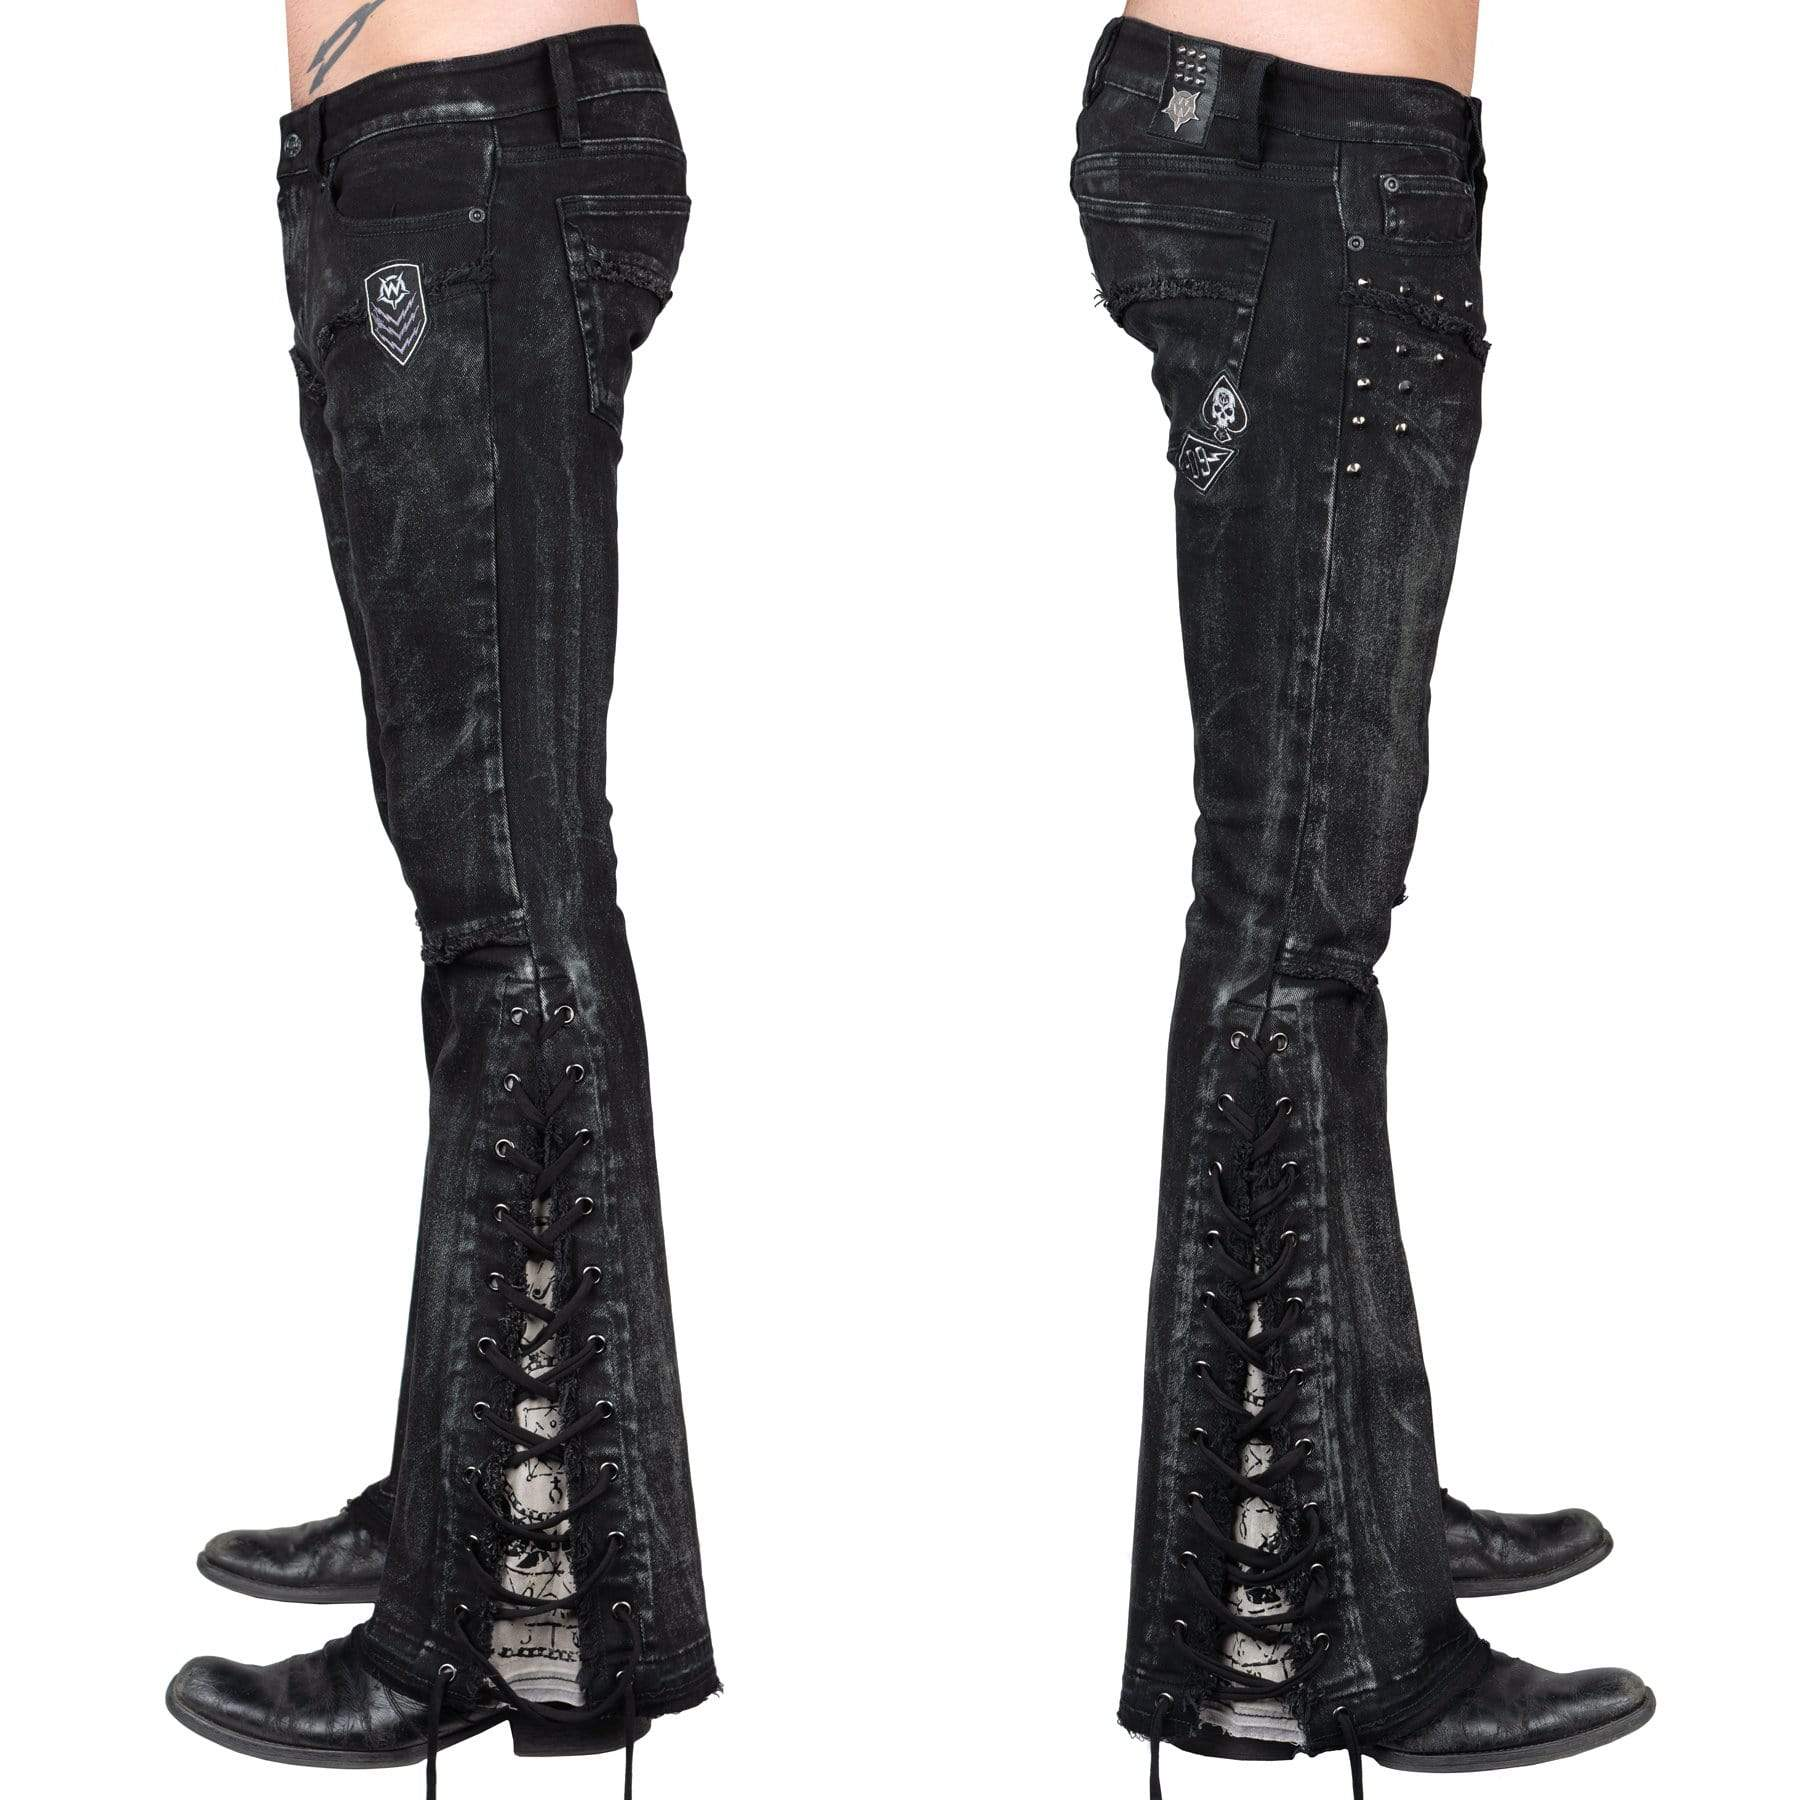 Wornstar Cutlass Denim Stage Jeans